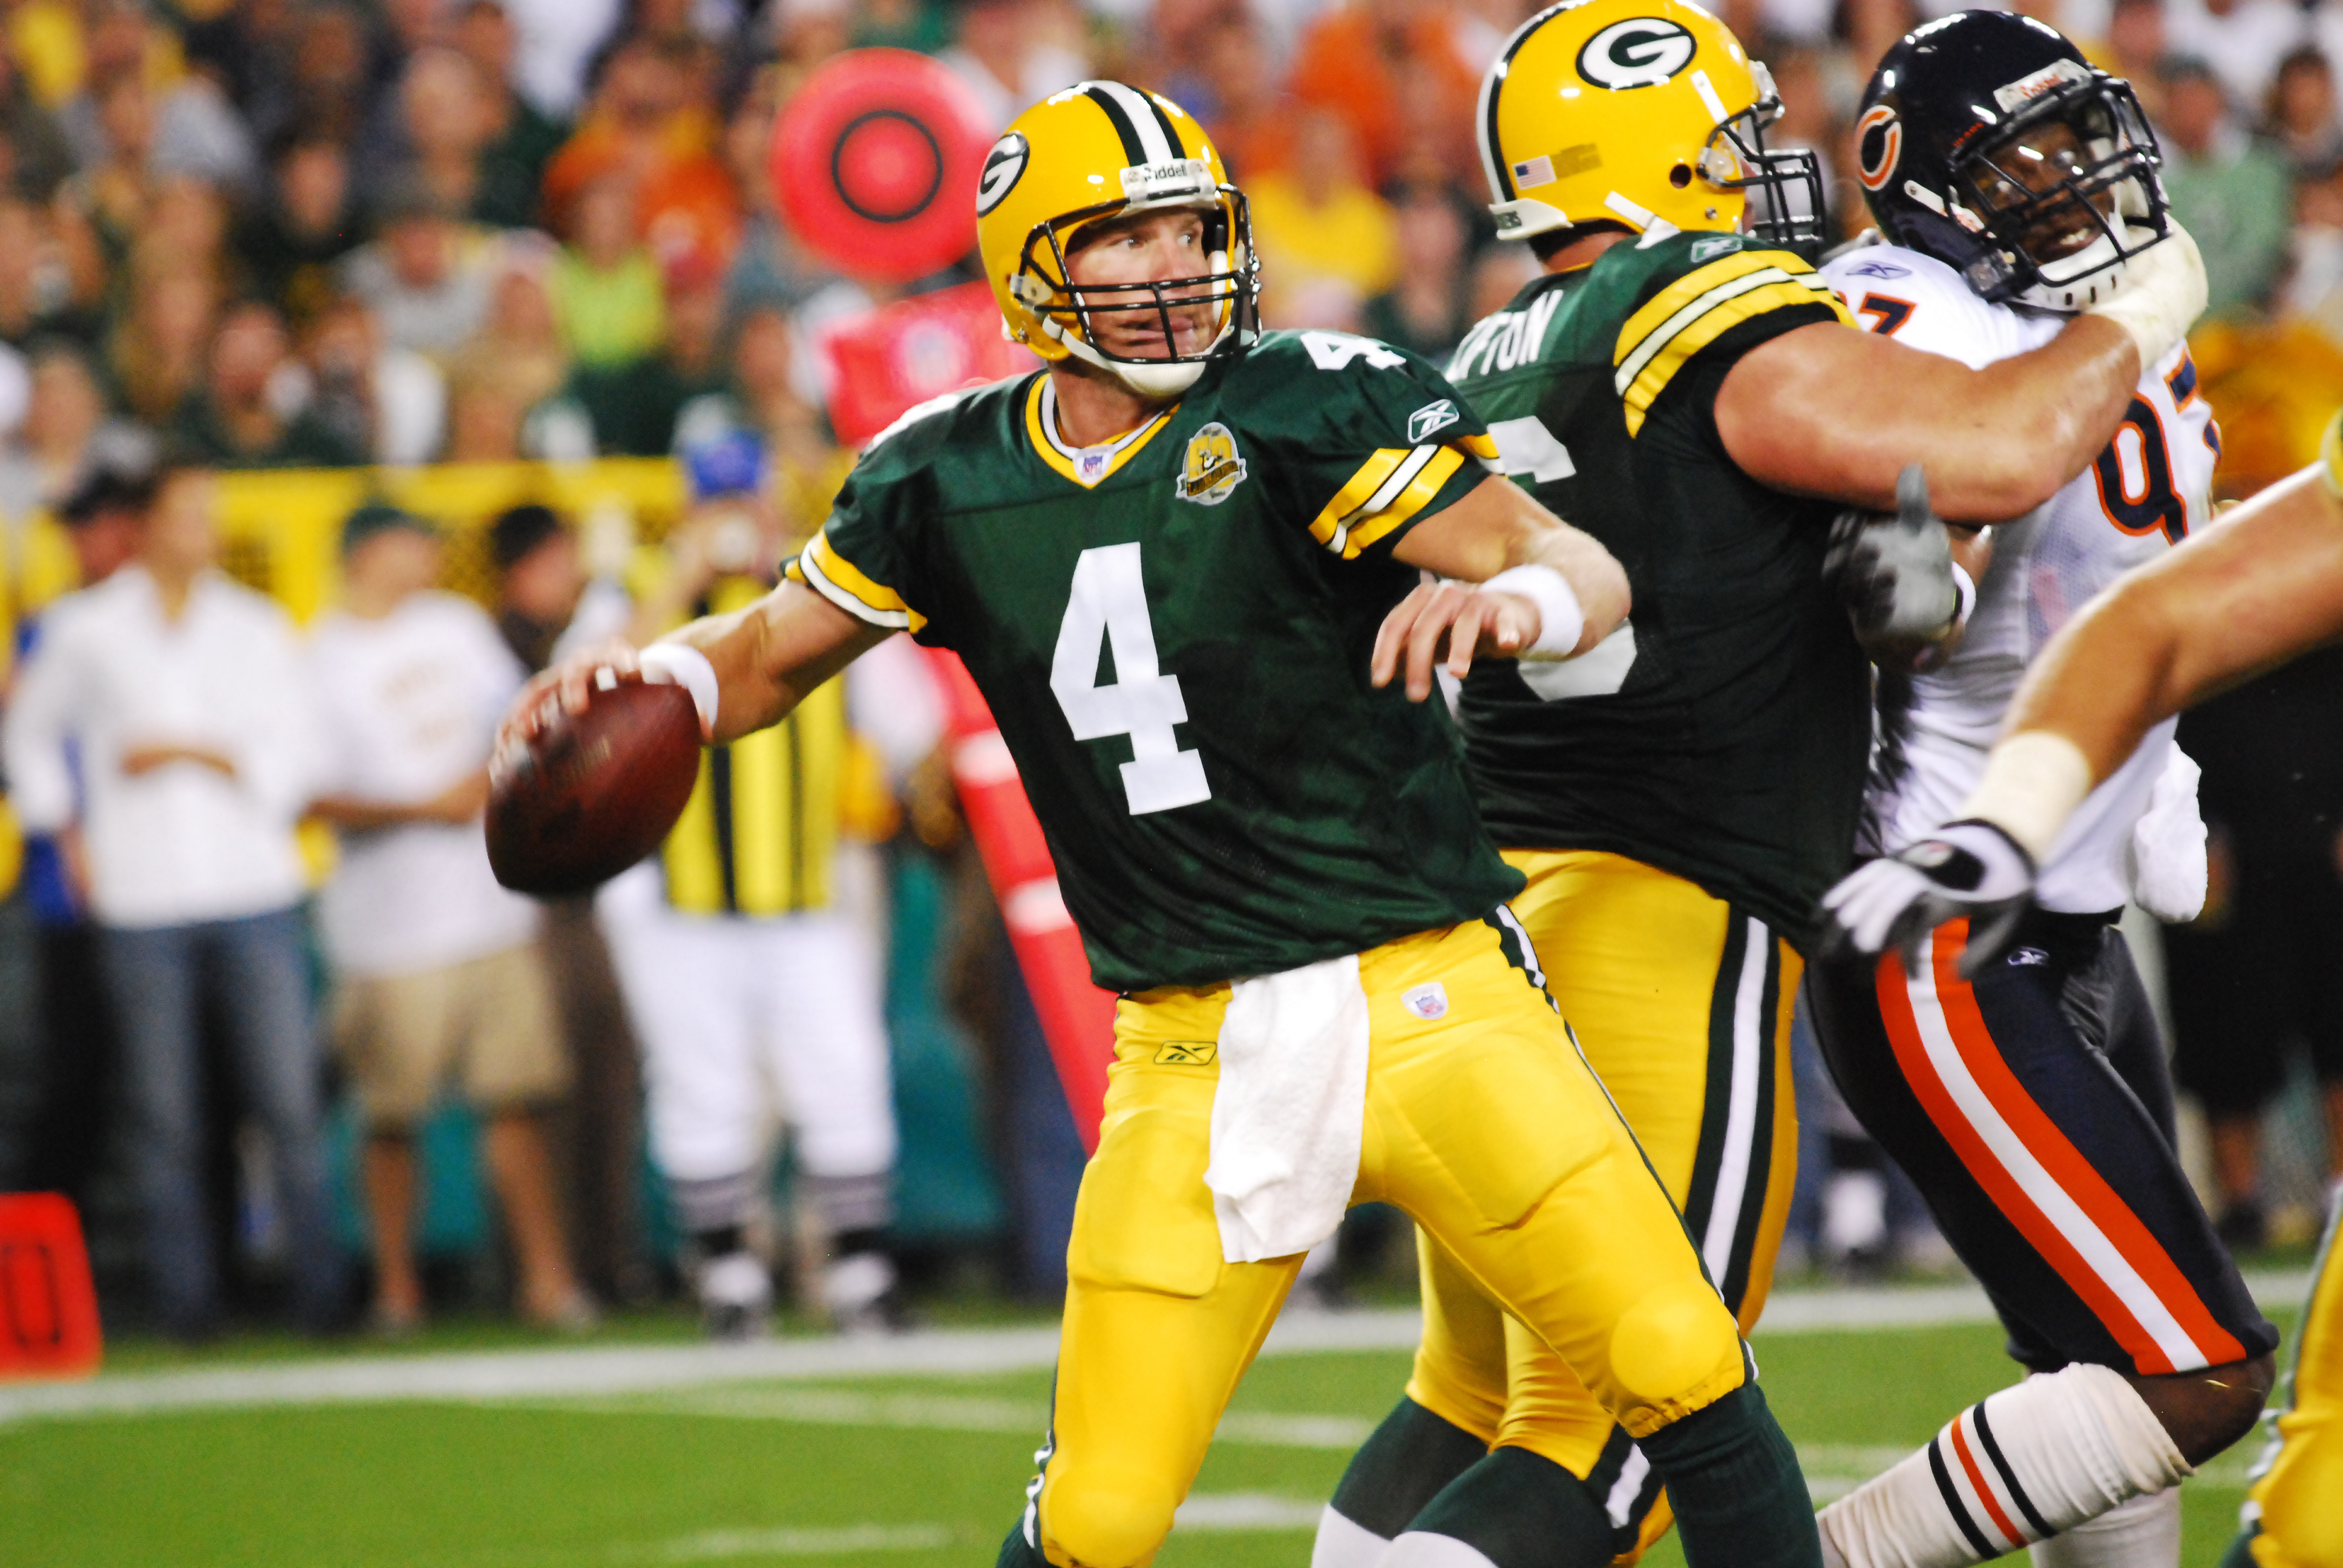 c25db986f57 It's been reported this afternoon that not only will the Chicago Bears  invade Lambeau Field to play the Green Bay Packers on Thanksgiving Night in  2015, ...